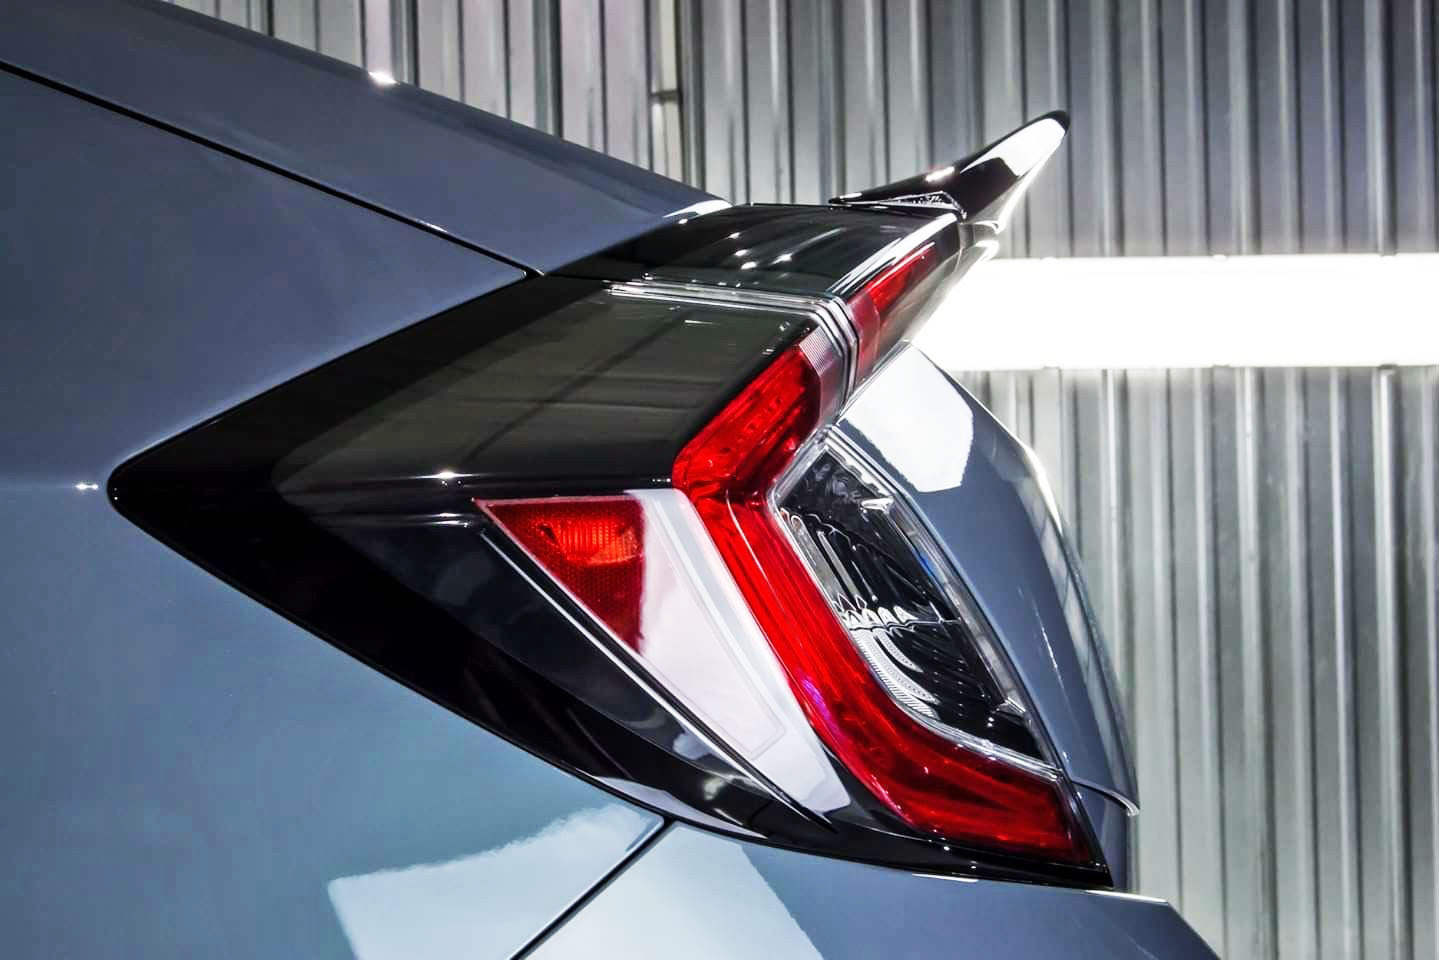 Spoiler in carbonio Per Honda Civic X 5D Hatchback CATENA DTO Stile Posteriore Boot Tronco Spoiler 2018